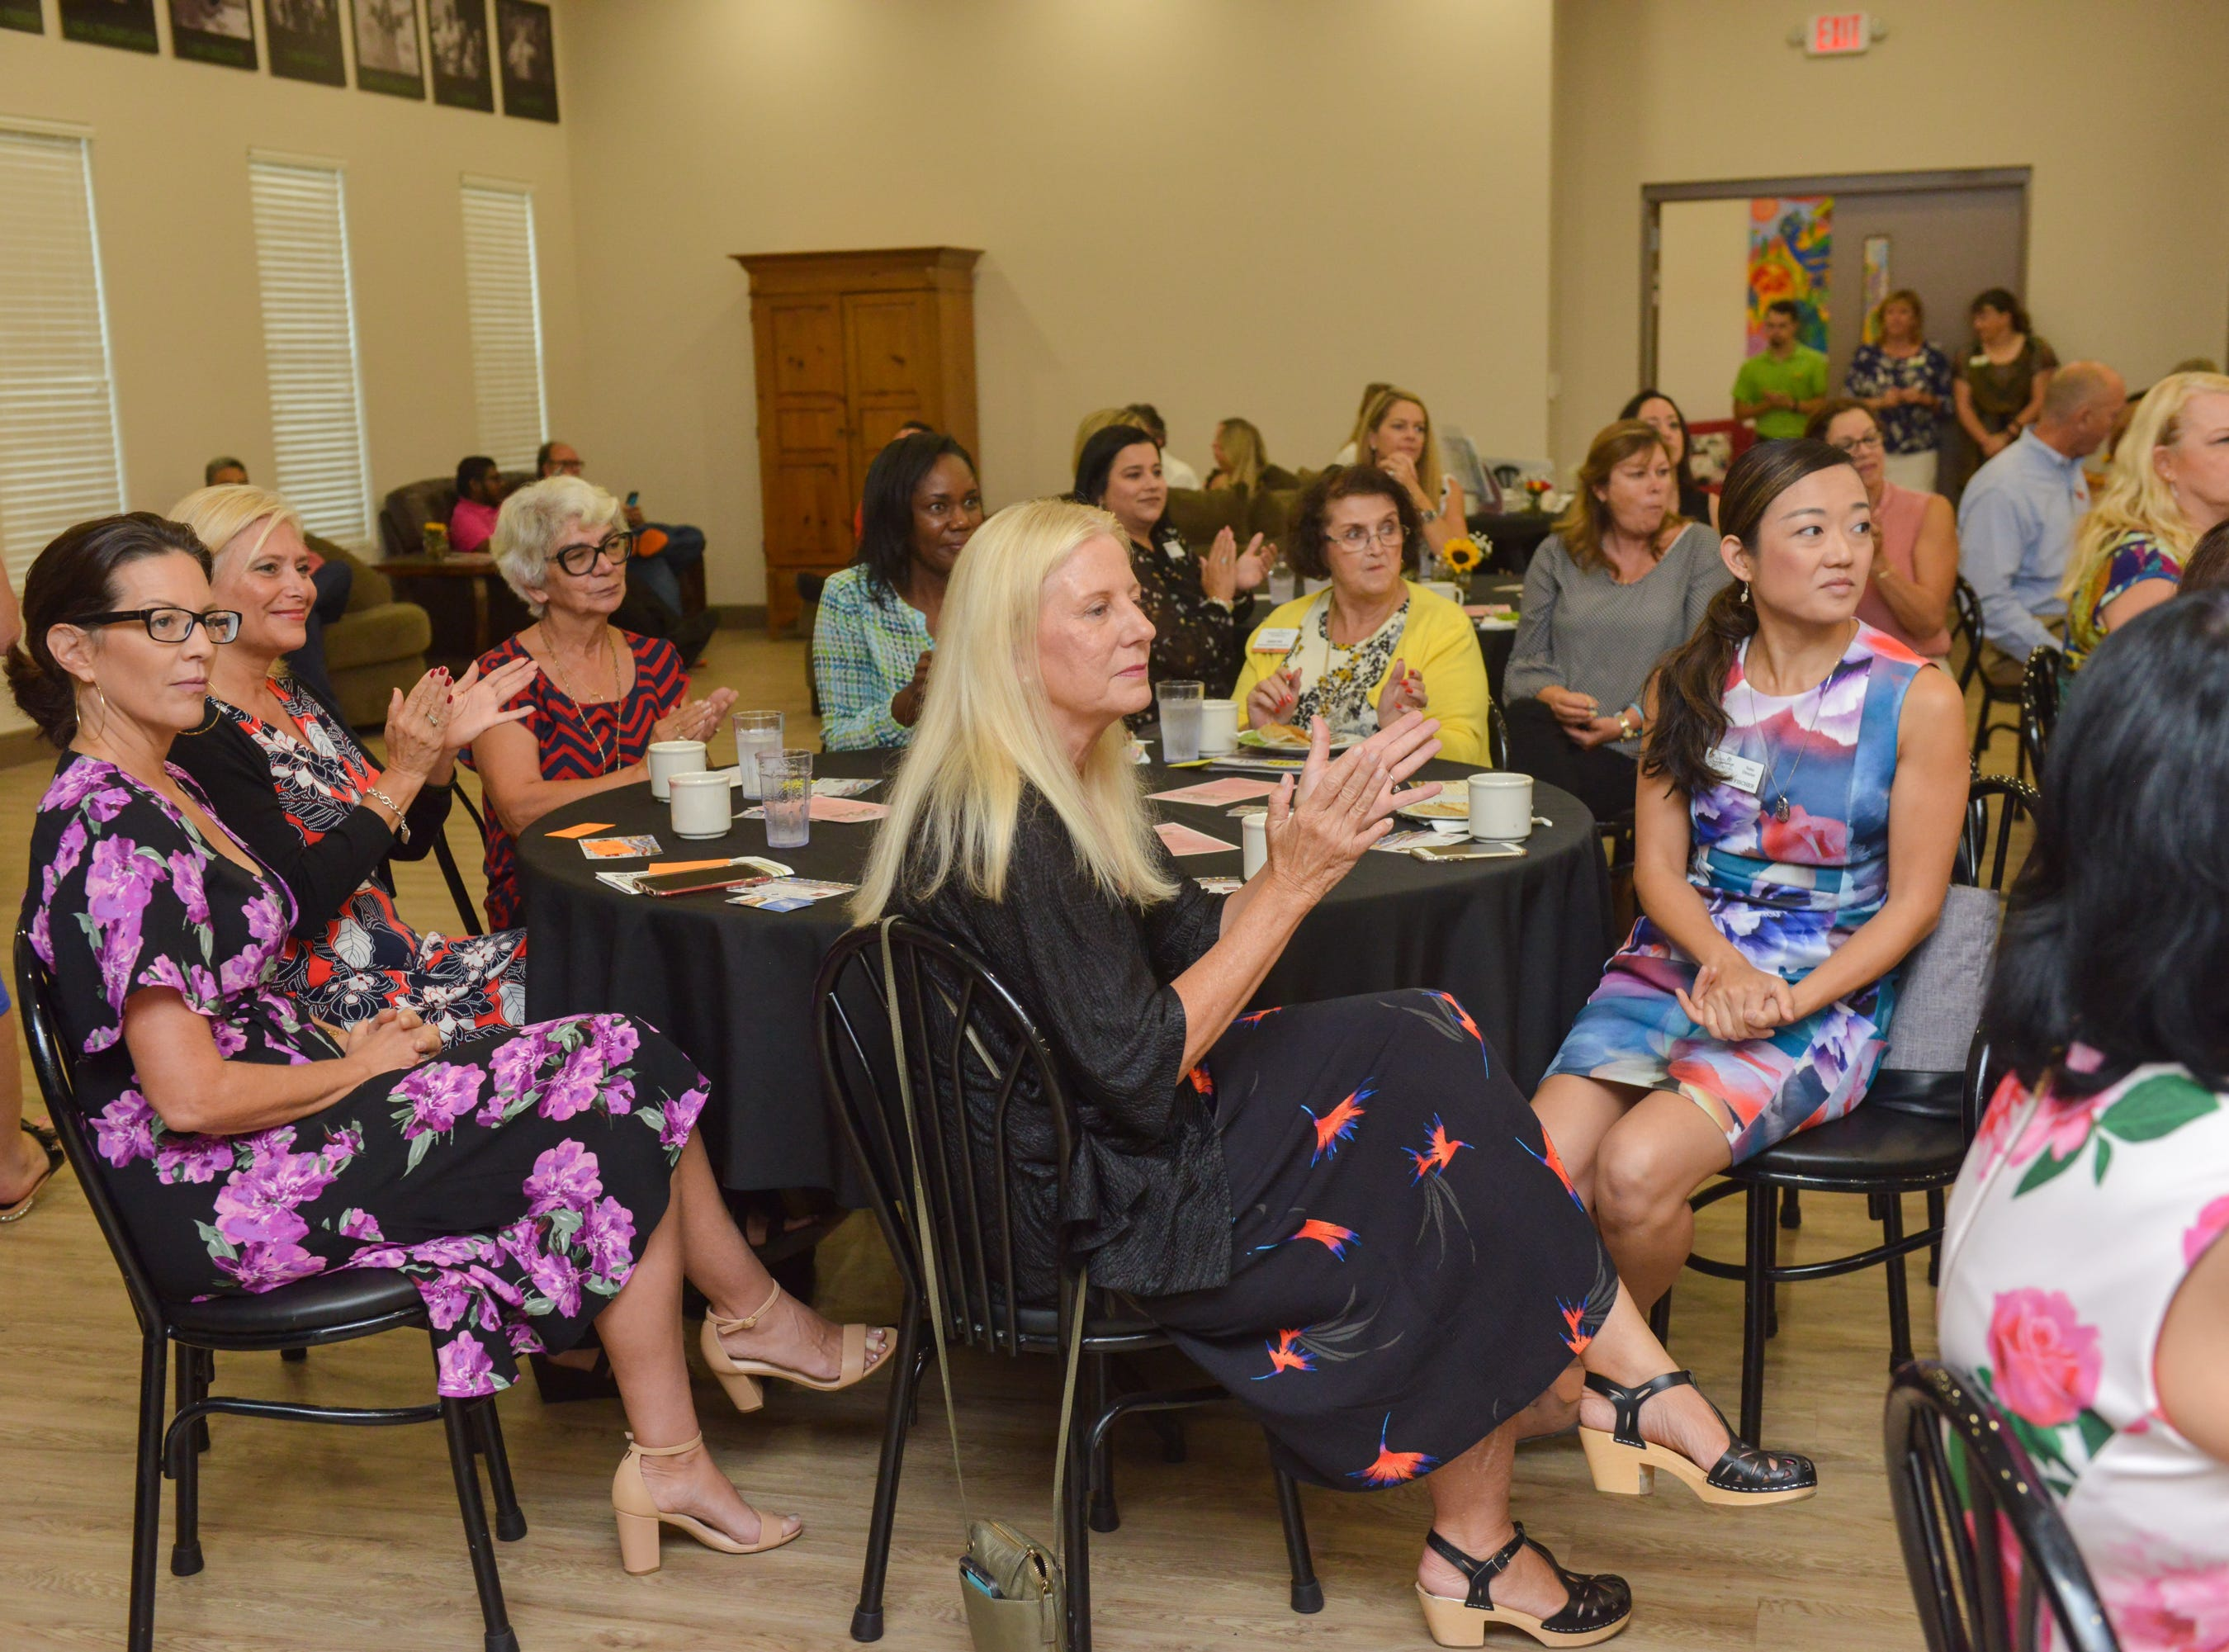 The Women of Excellence Gathering at Promise in Brevard sponsored by the Melbourne Regional Chamber.